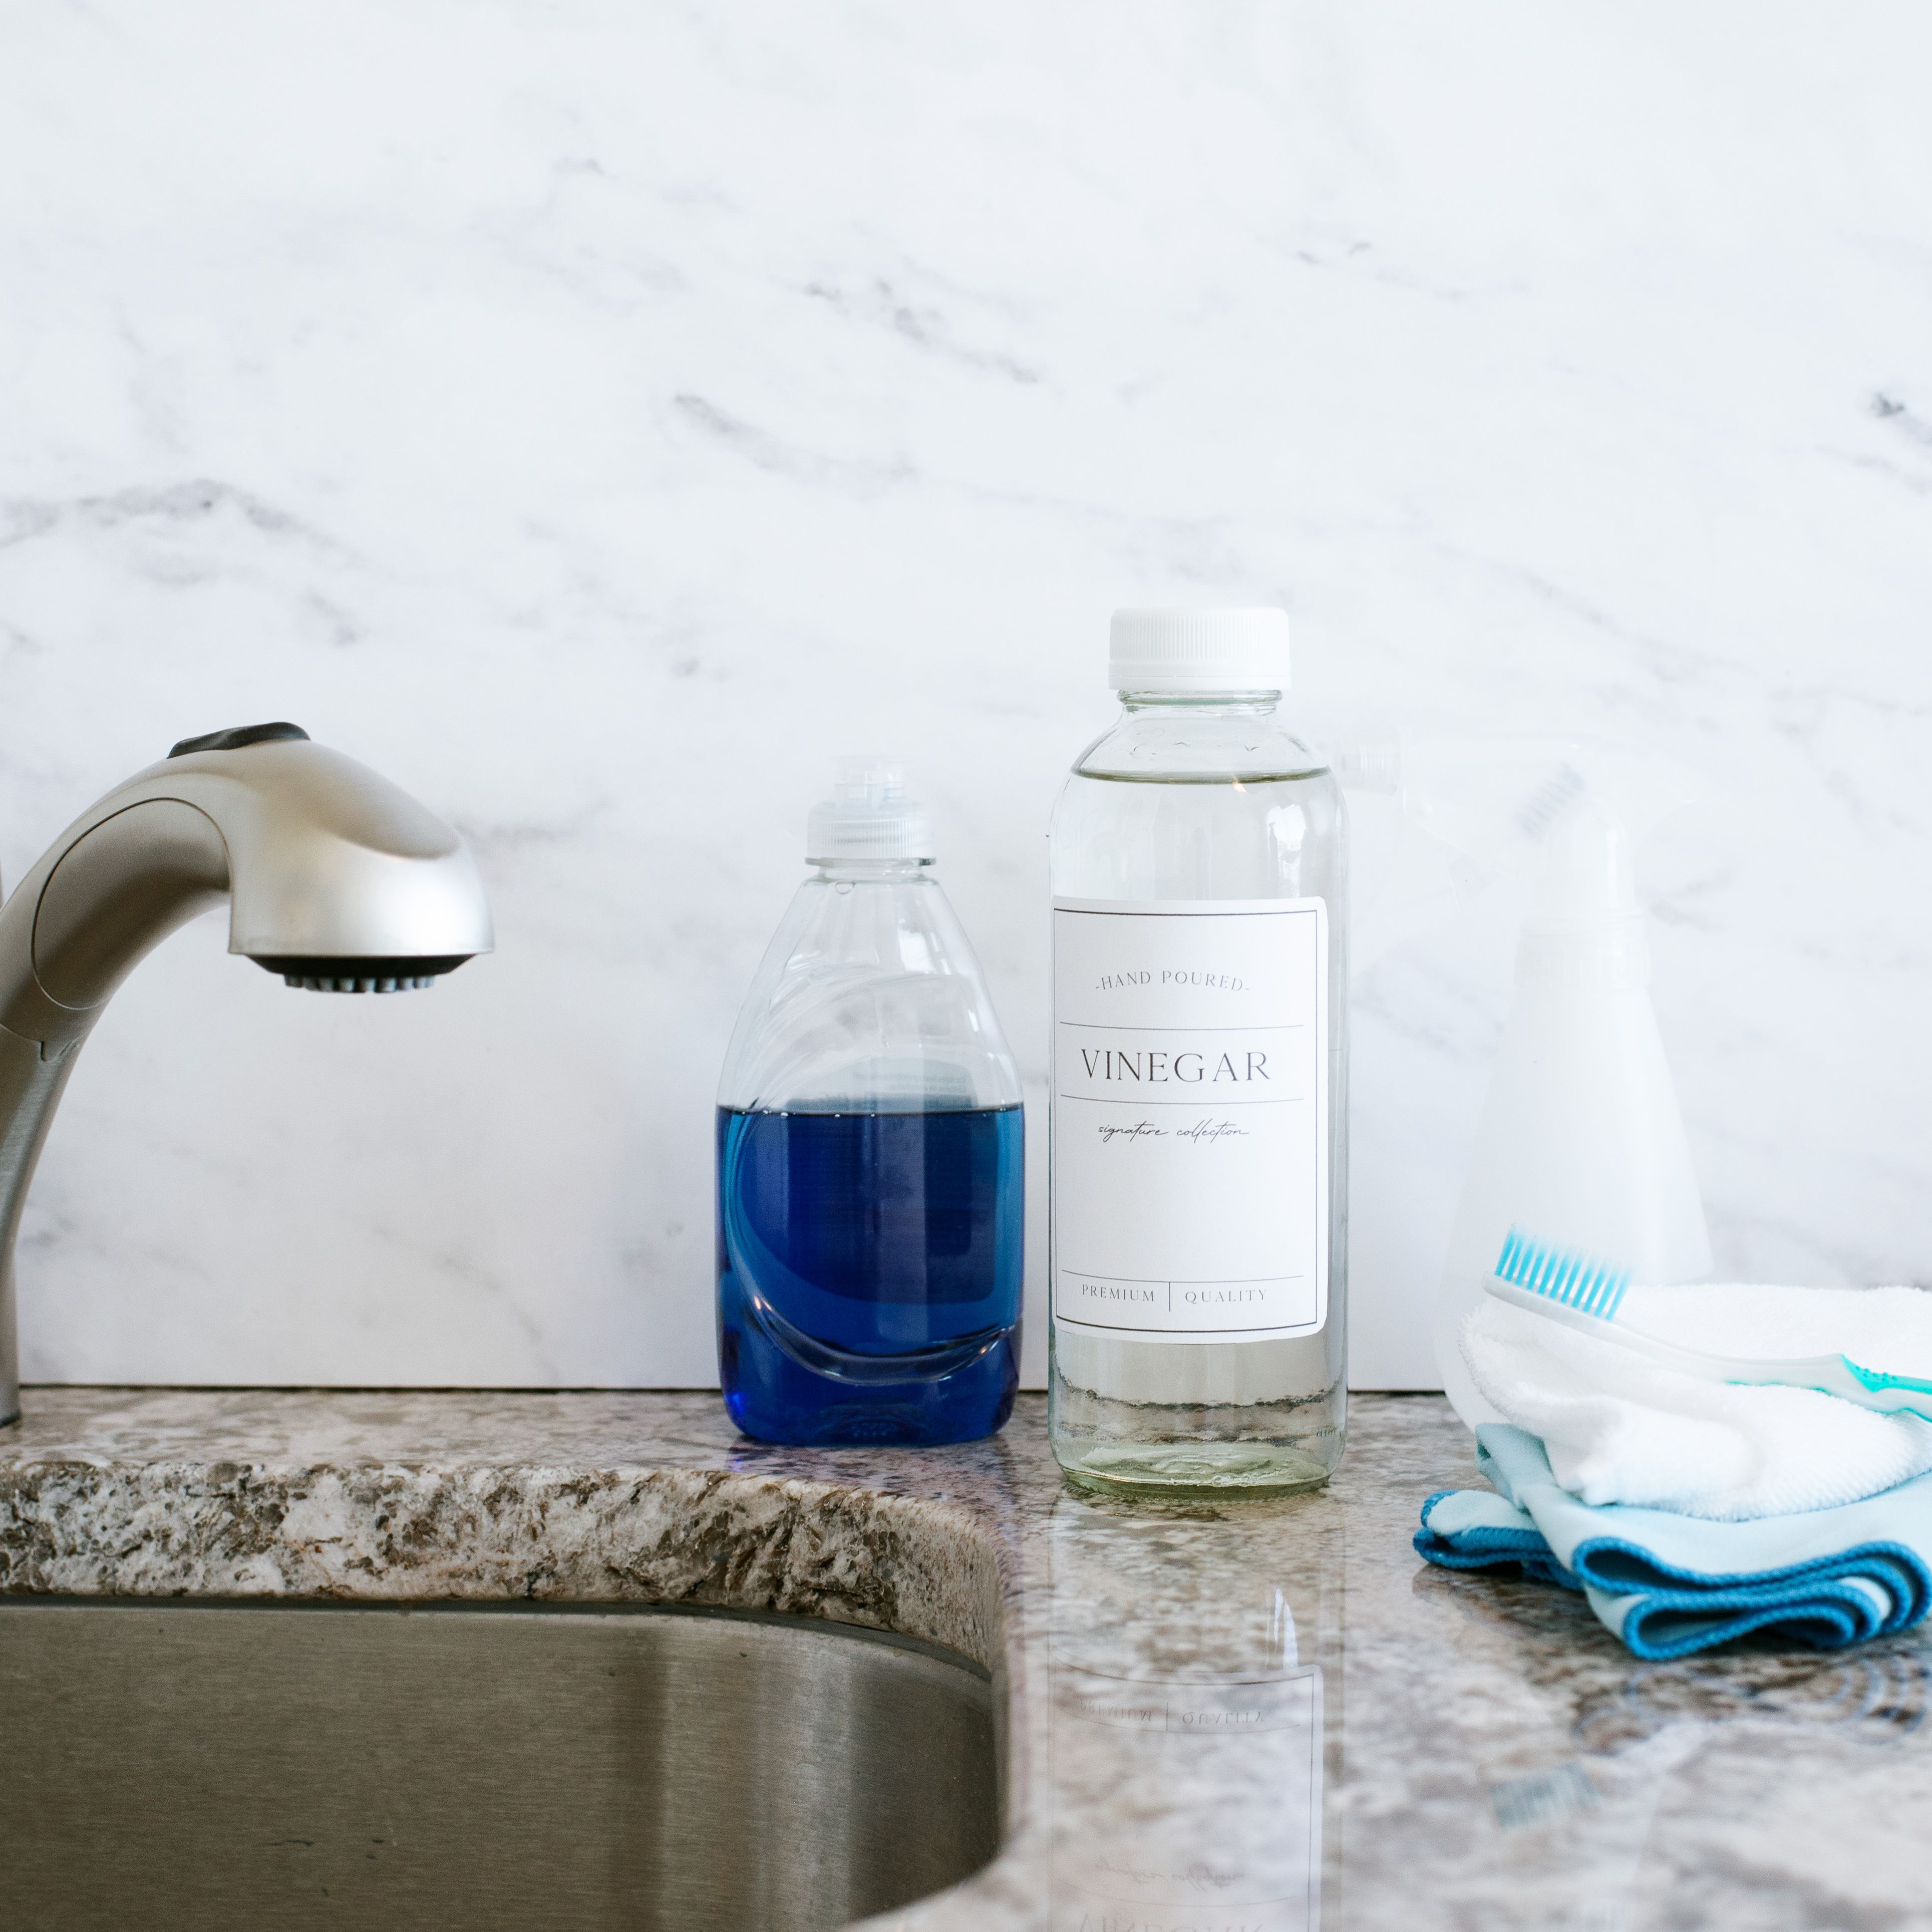 How To Clean Bathroom And Kitchen Sink Faucets